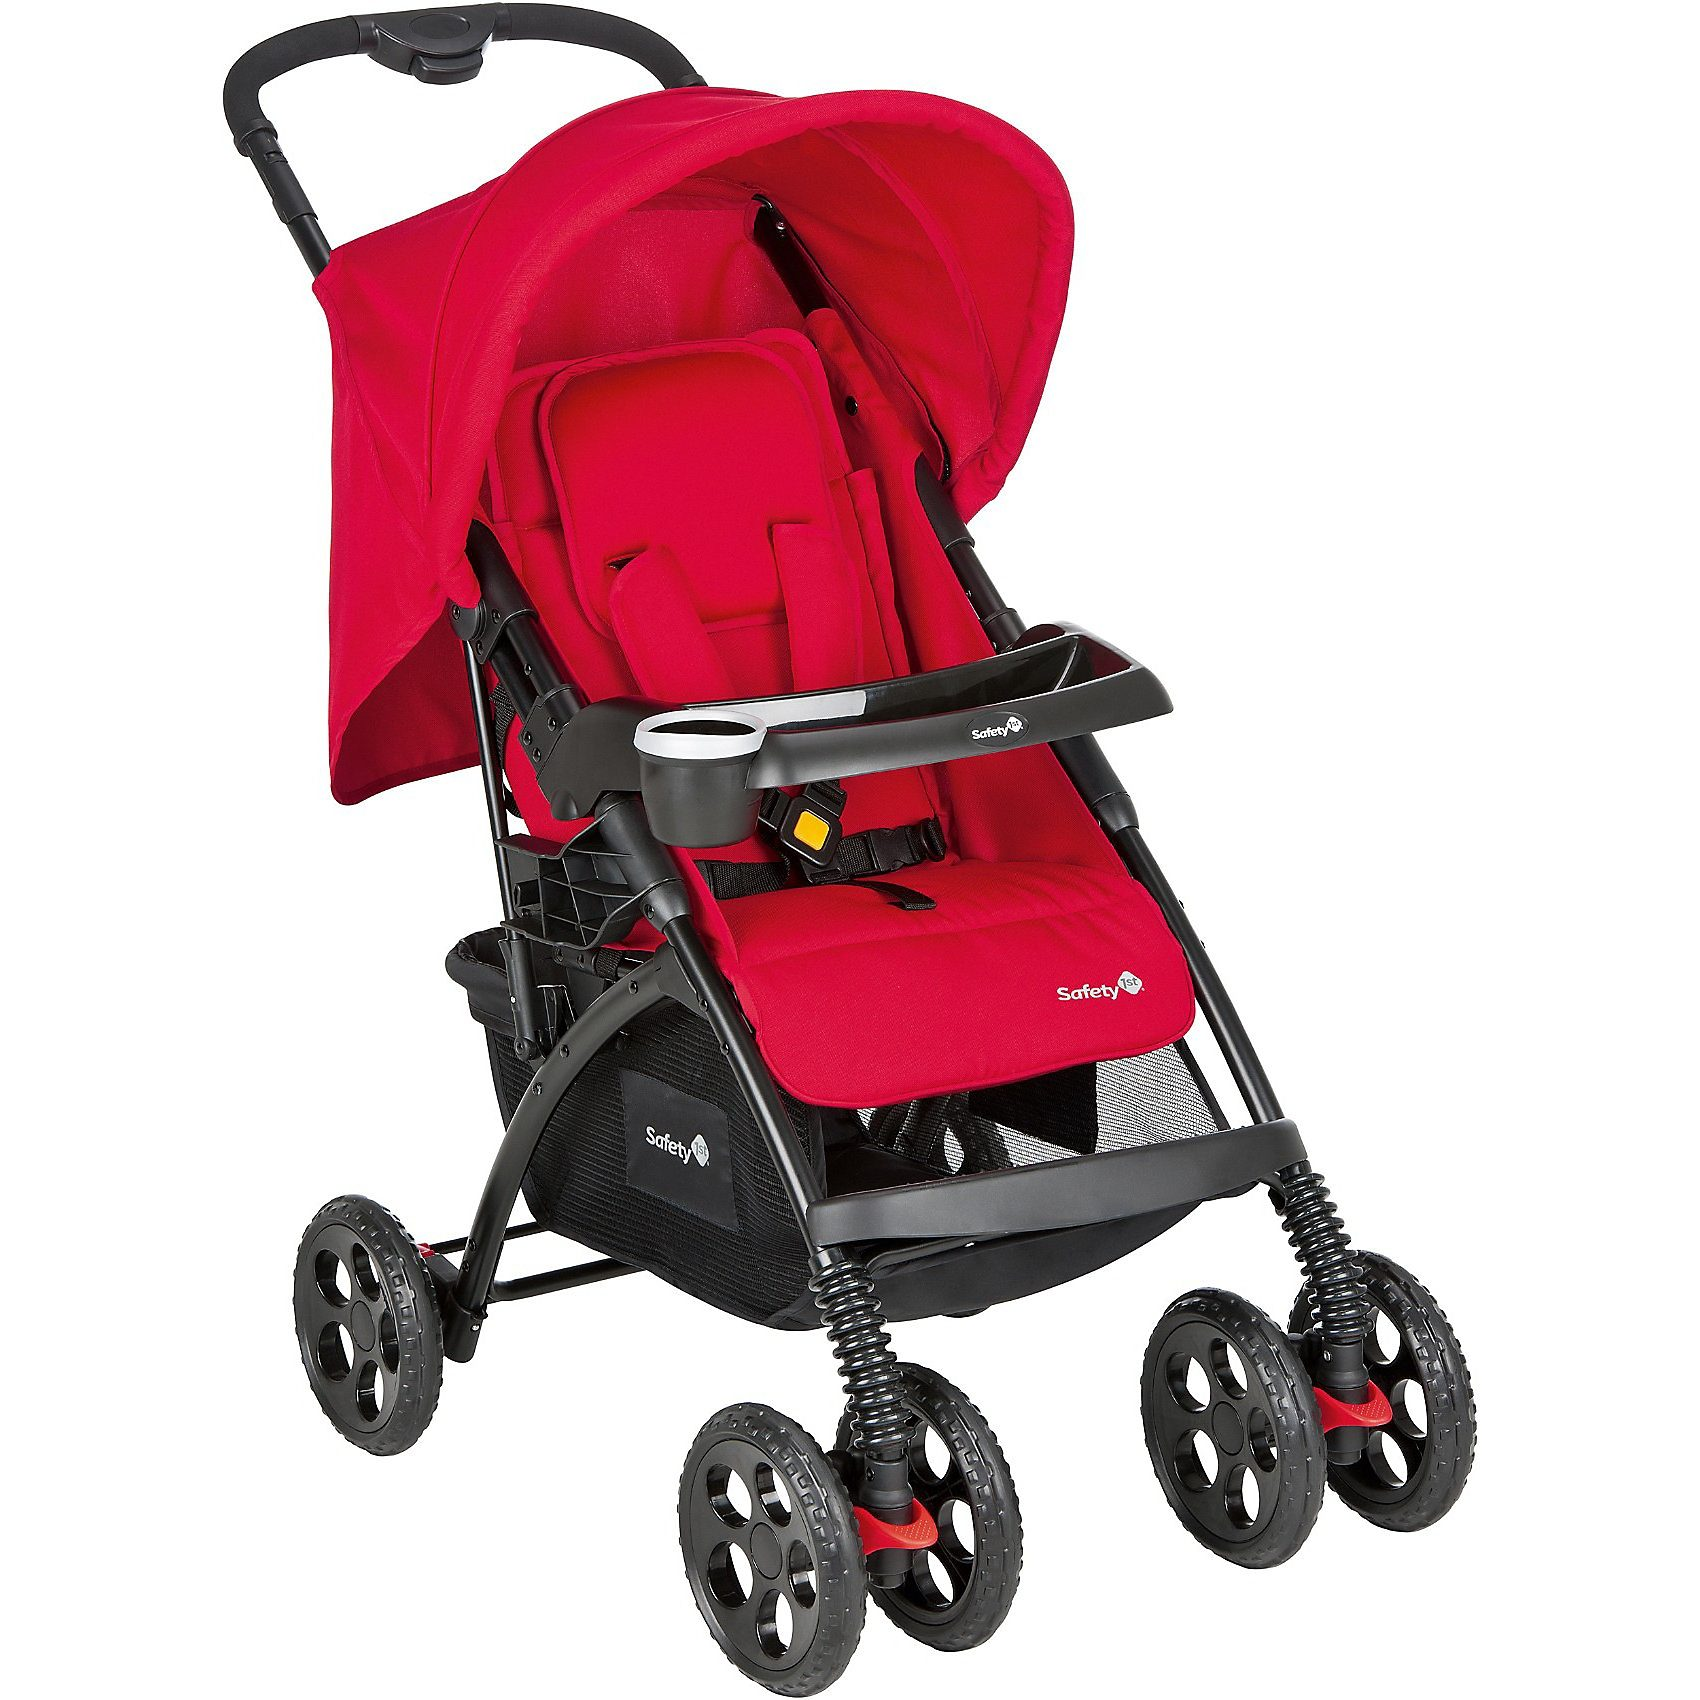 Safety 1st Sportwagen Trendideal Confort, full red